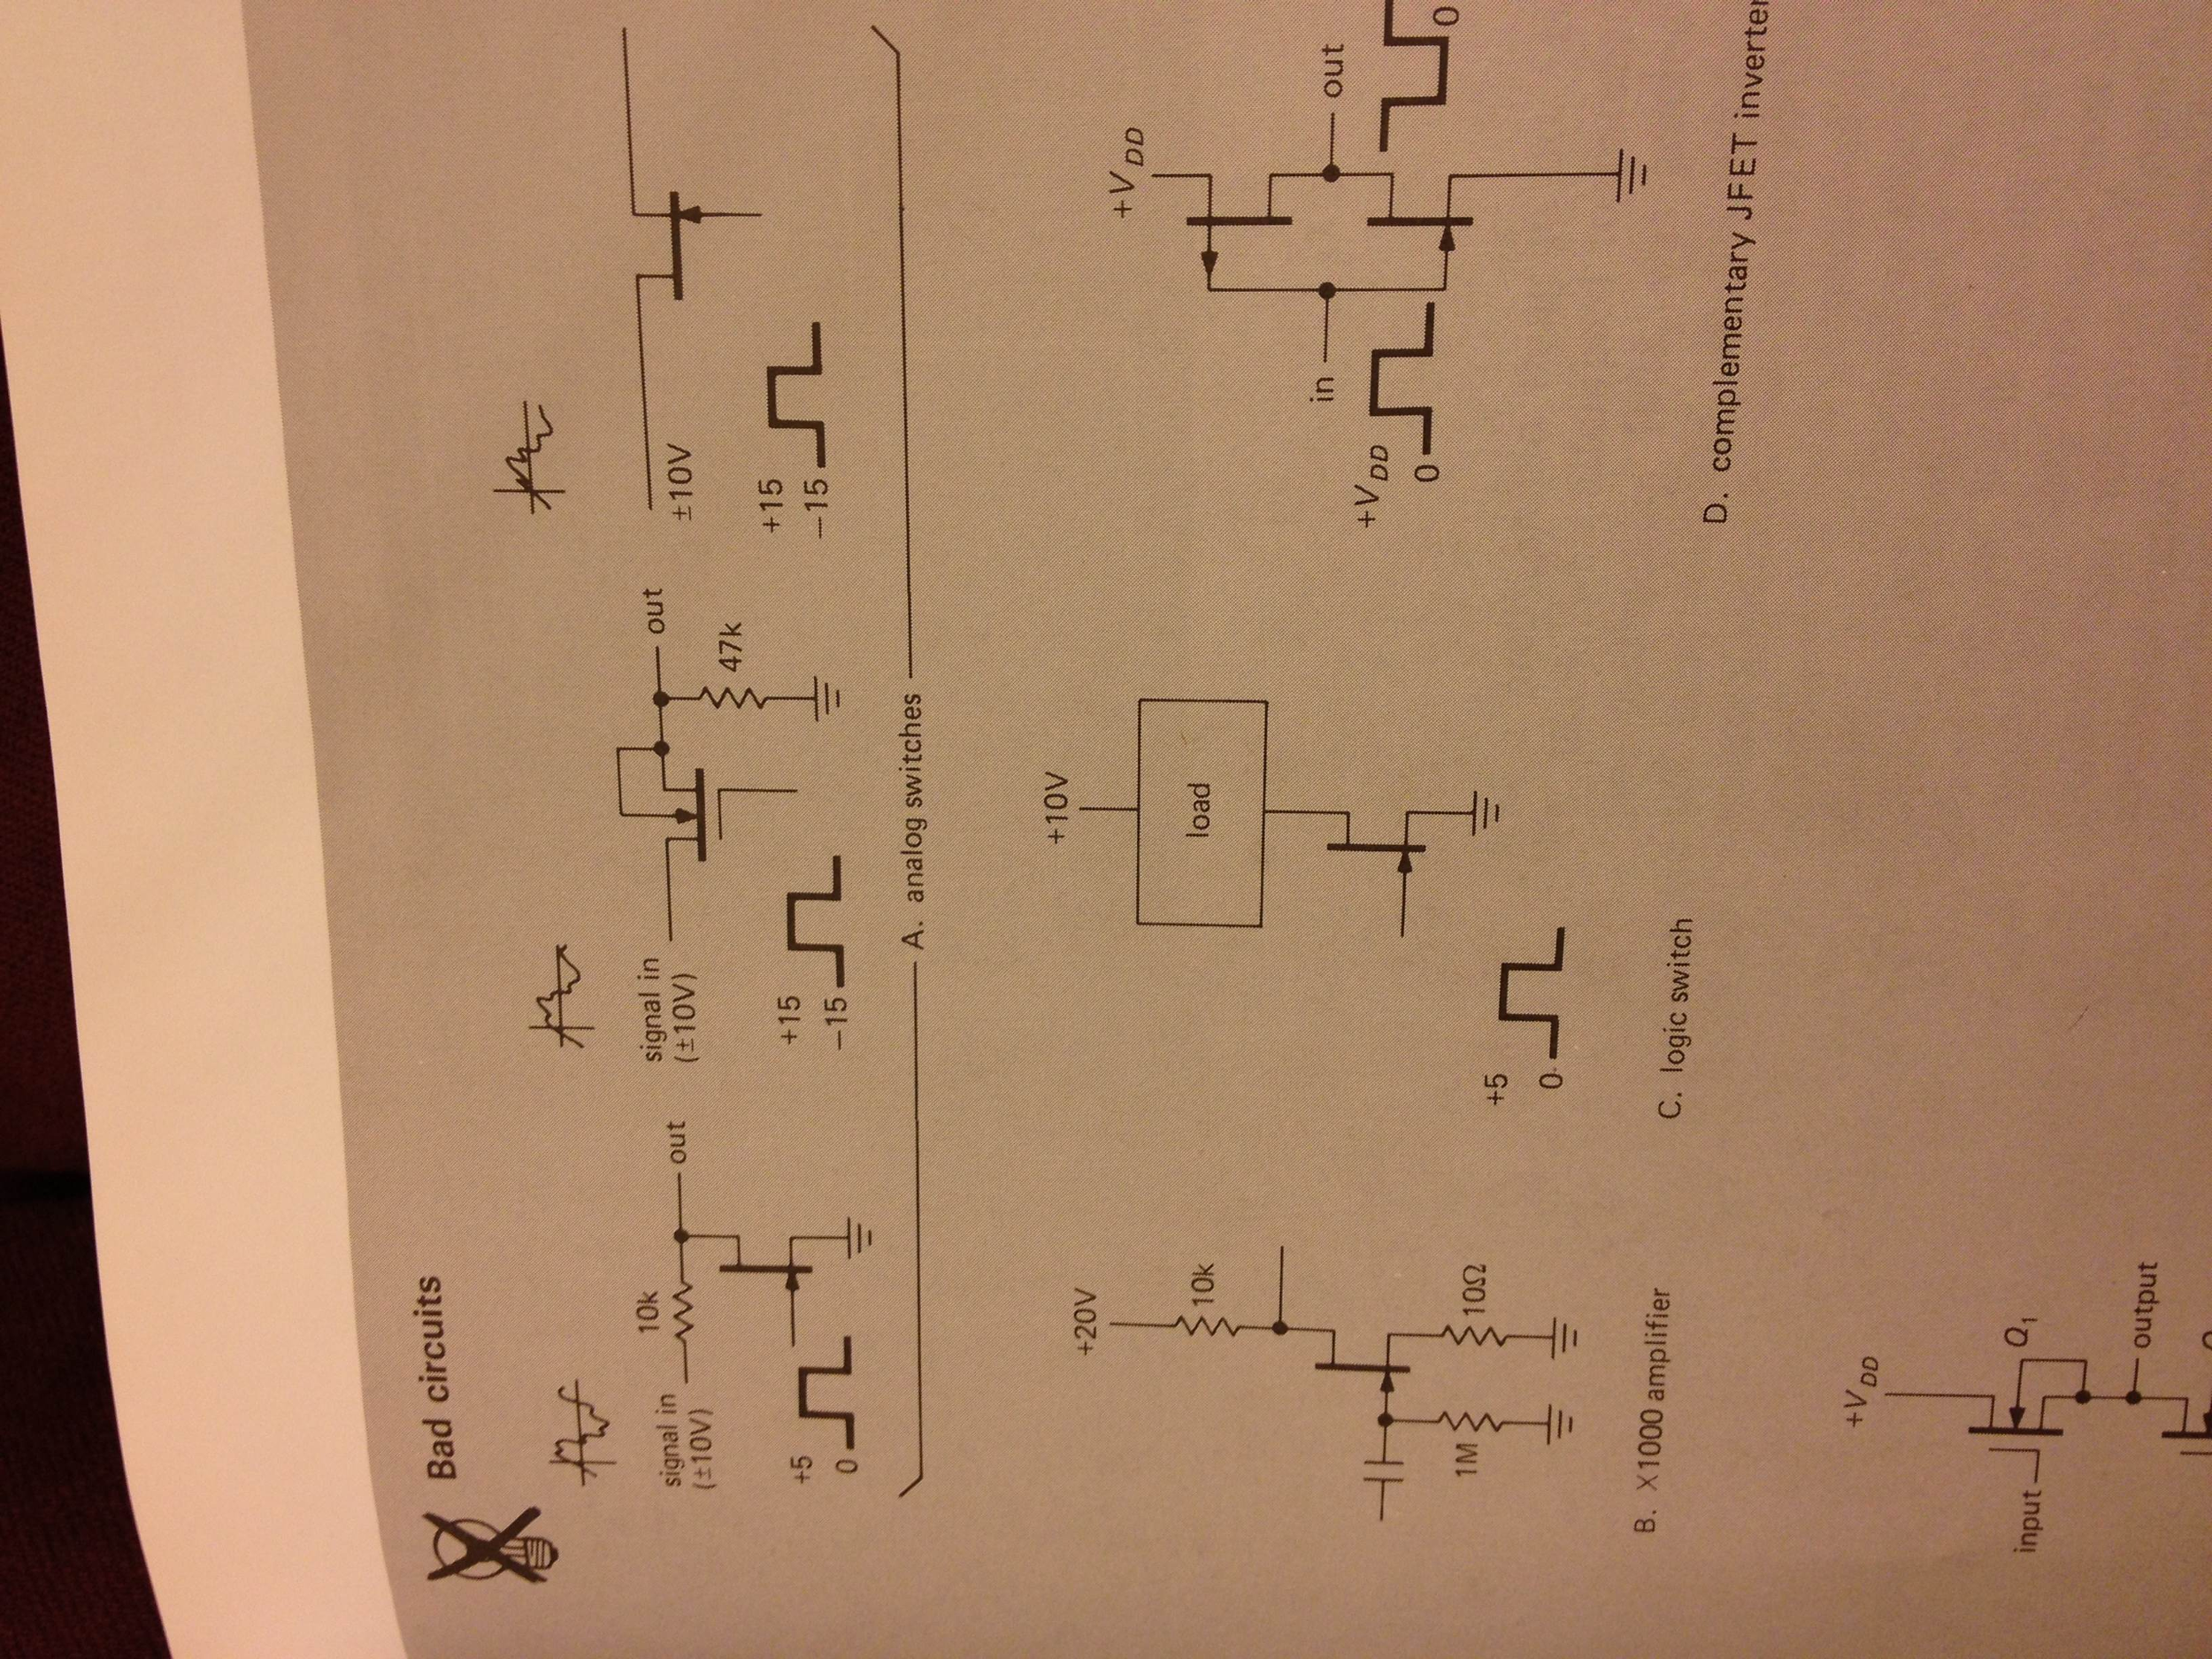 Explain why A.(the three analog switches are bad)